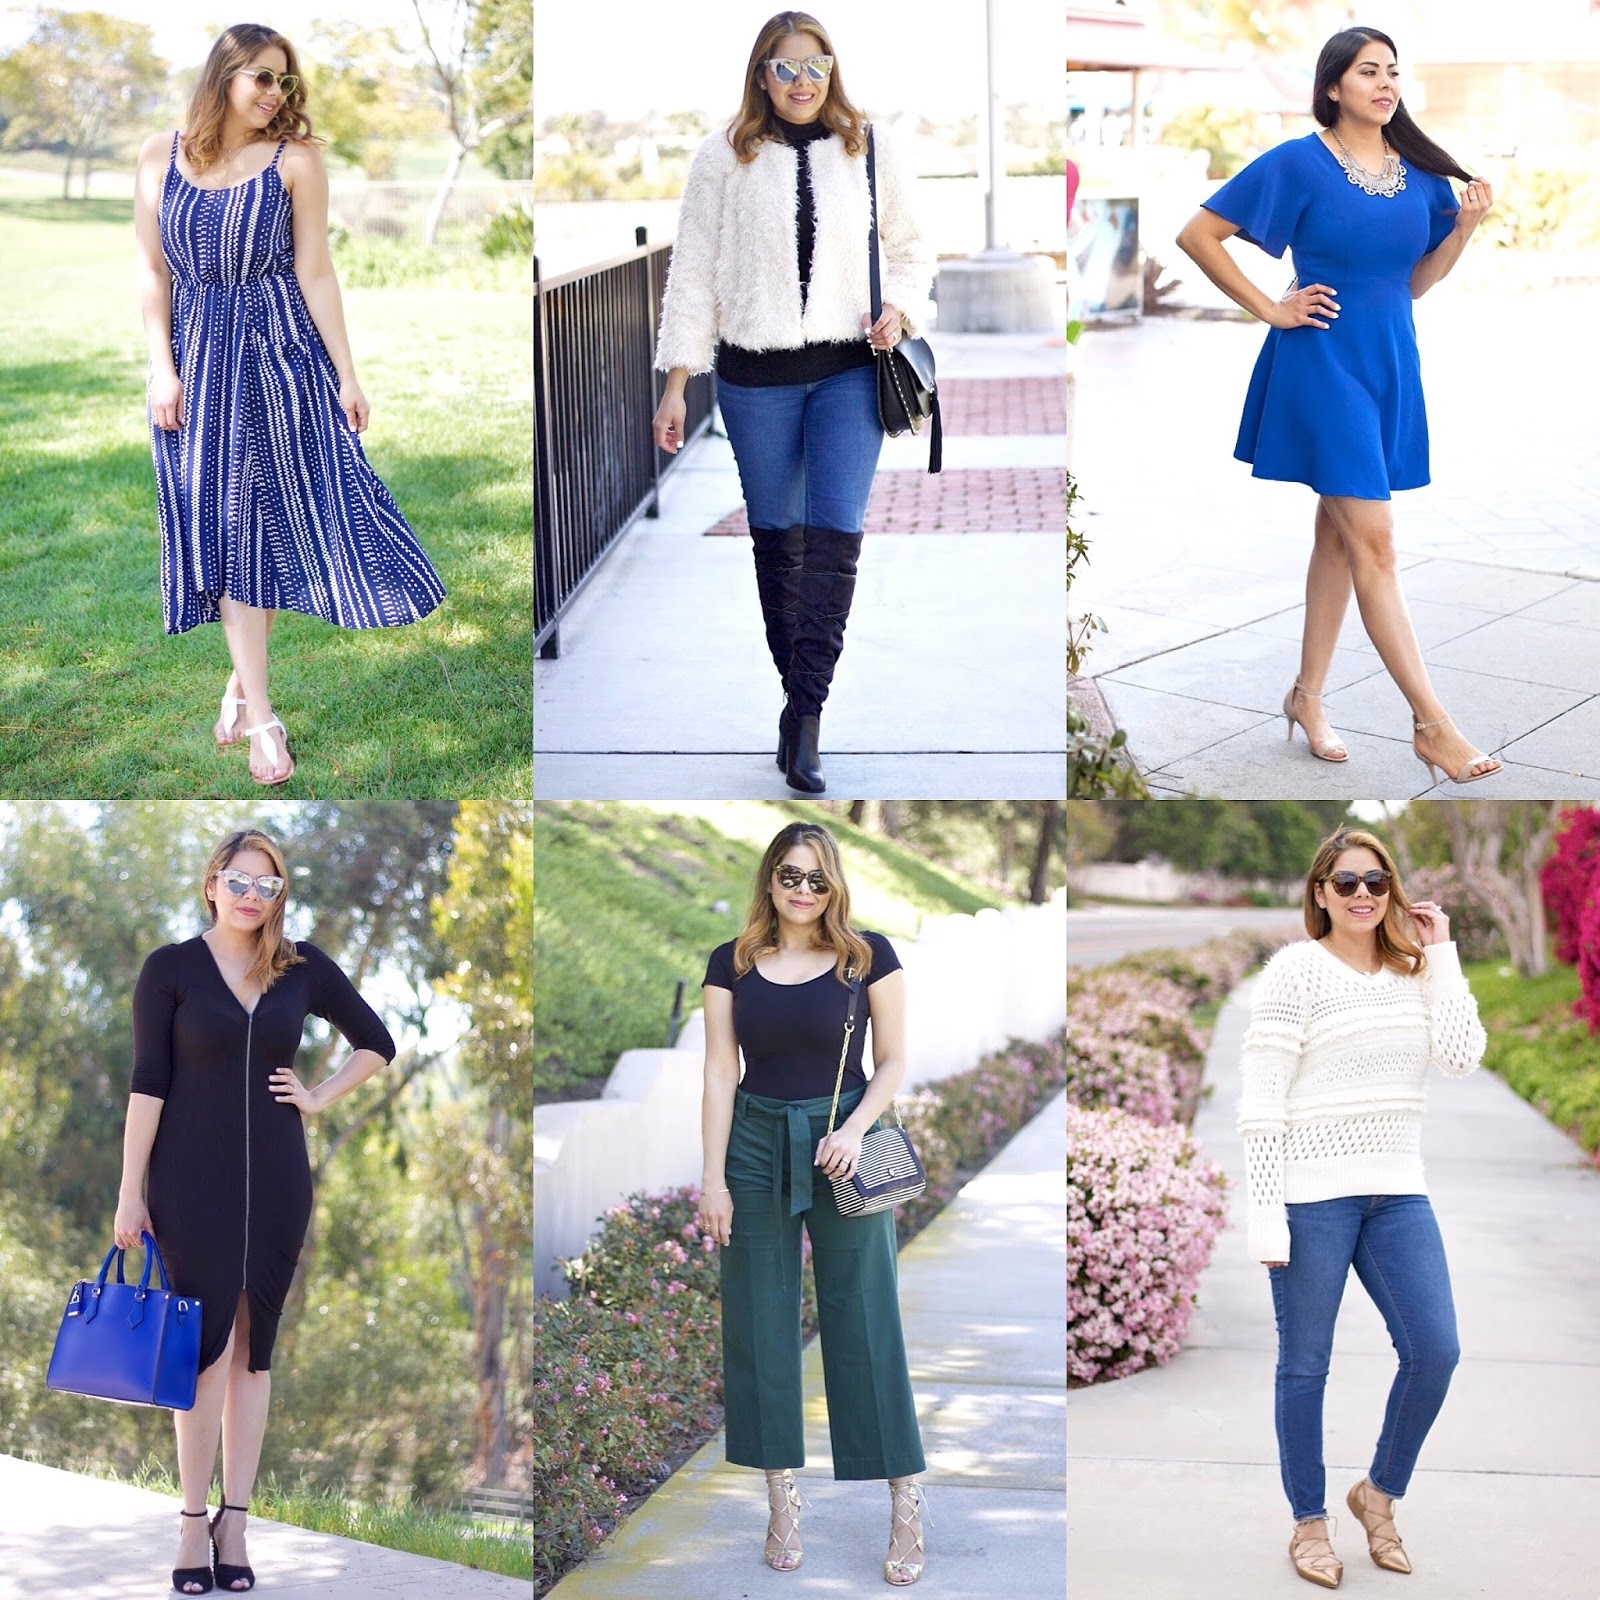 Outfit ideas, Spring 2016 outfit ideas, latina fashion blogger, san diego fashion, san diego fashion blogger, banana republic blogger, cabi blogger